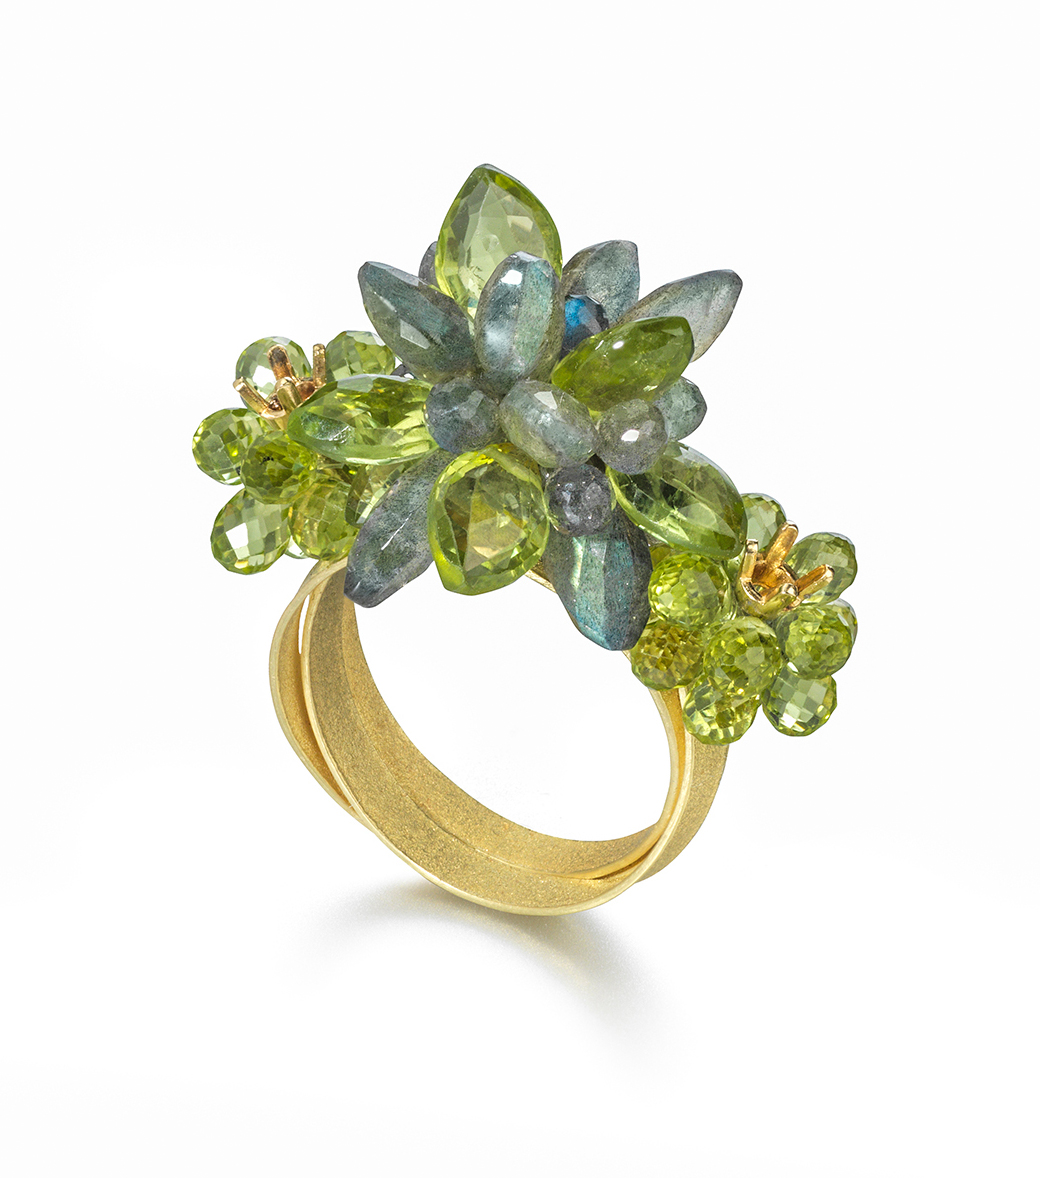 18ct Gold Cocktail Ring with clusters of Labradorite and Peridot